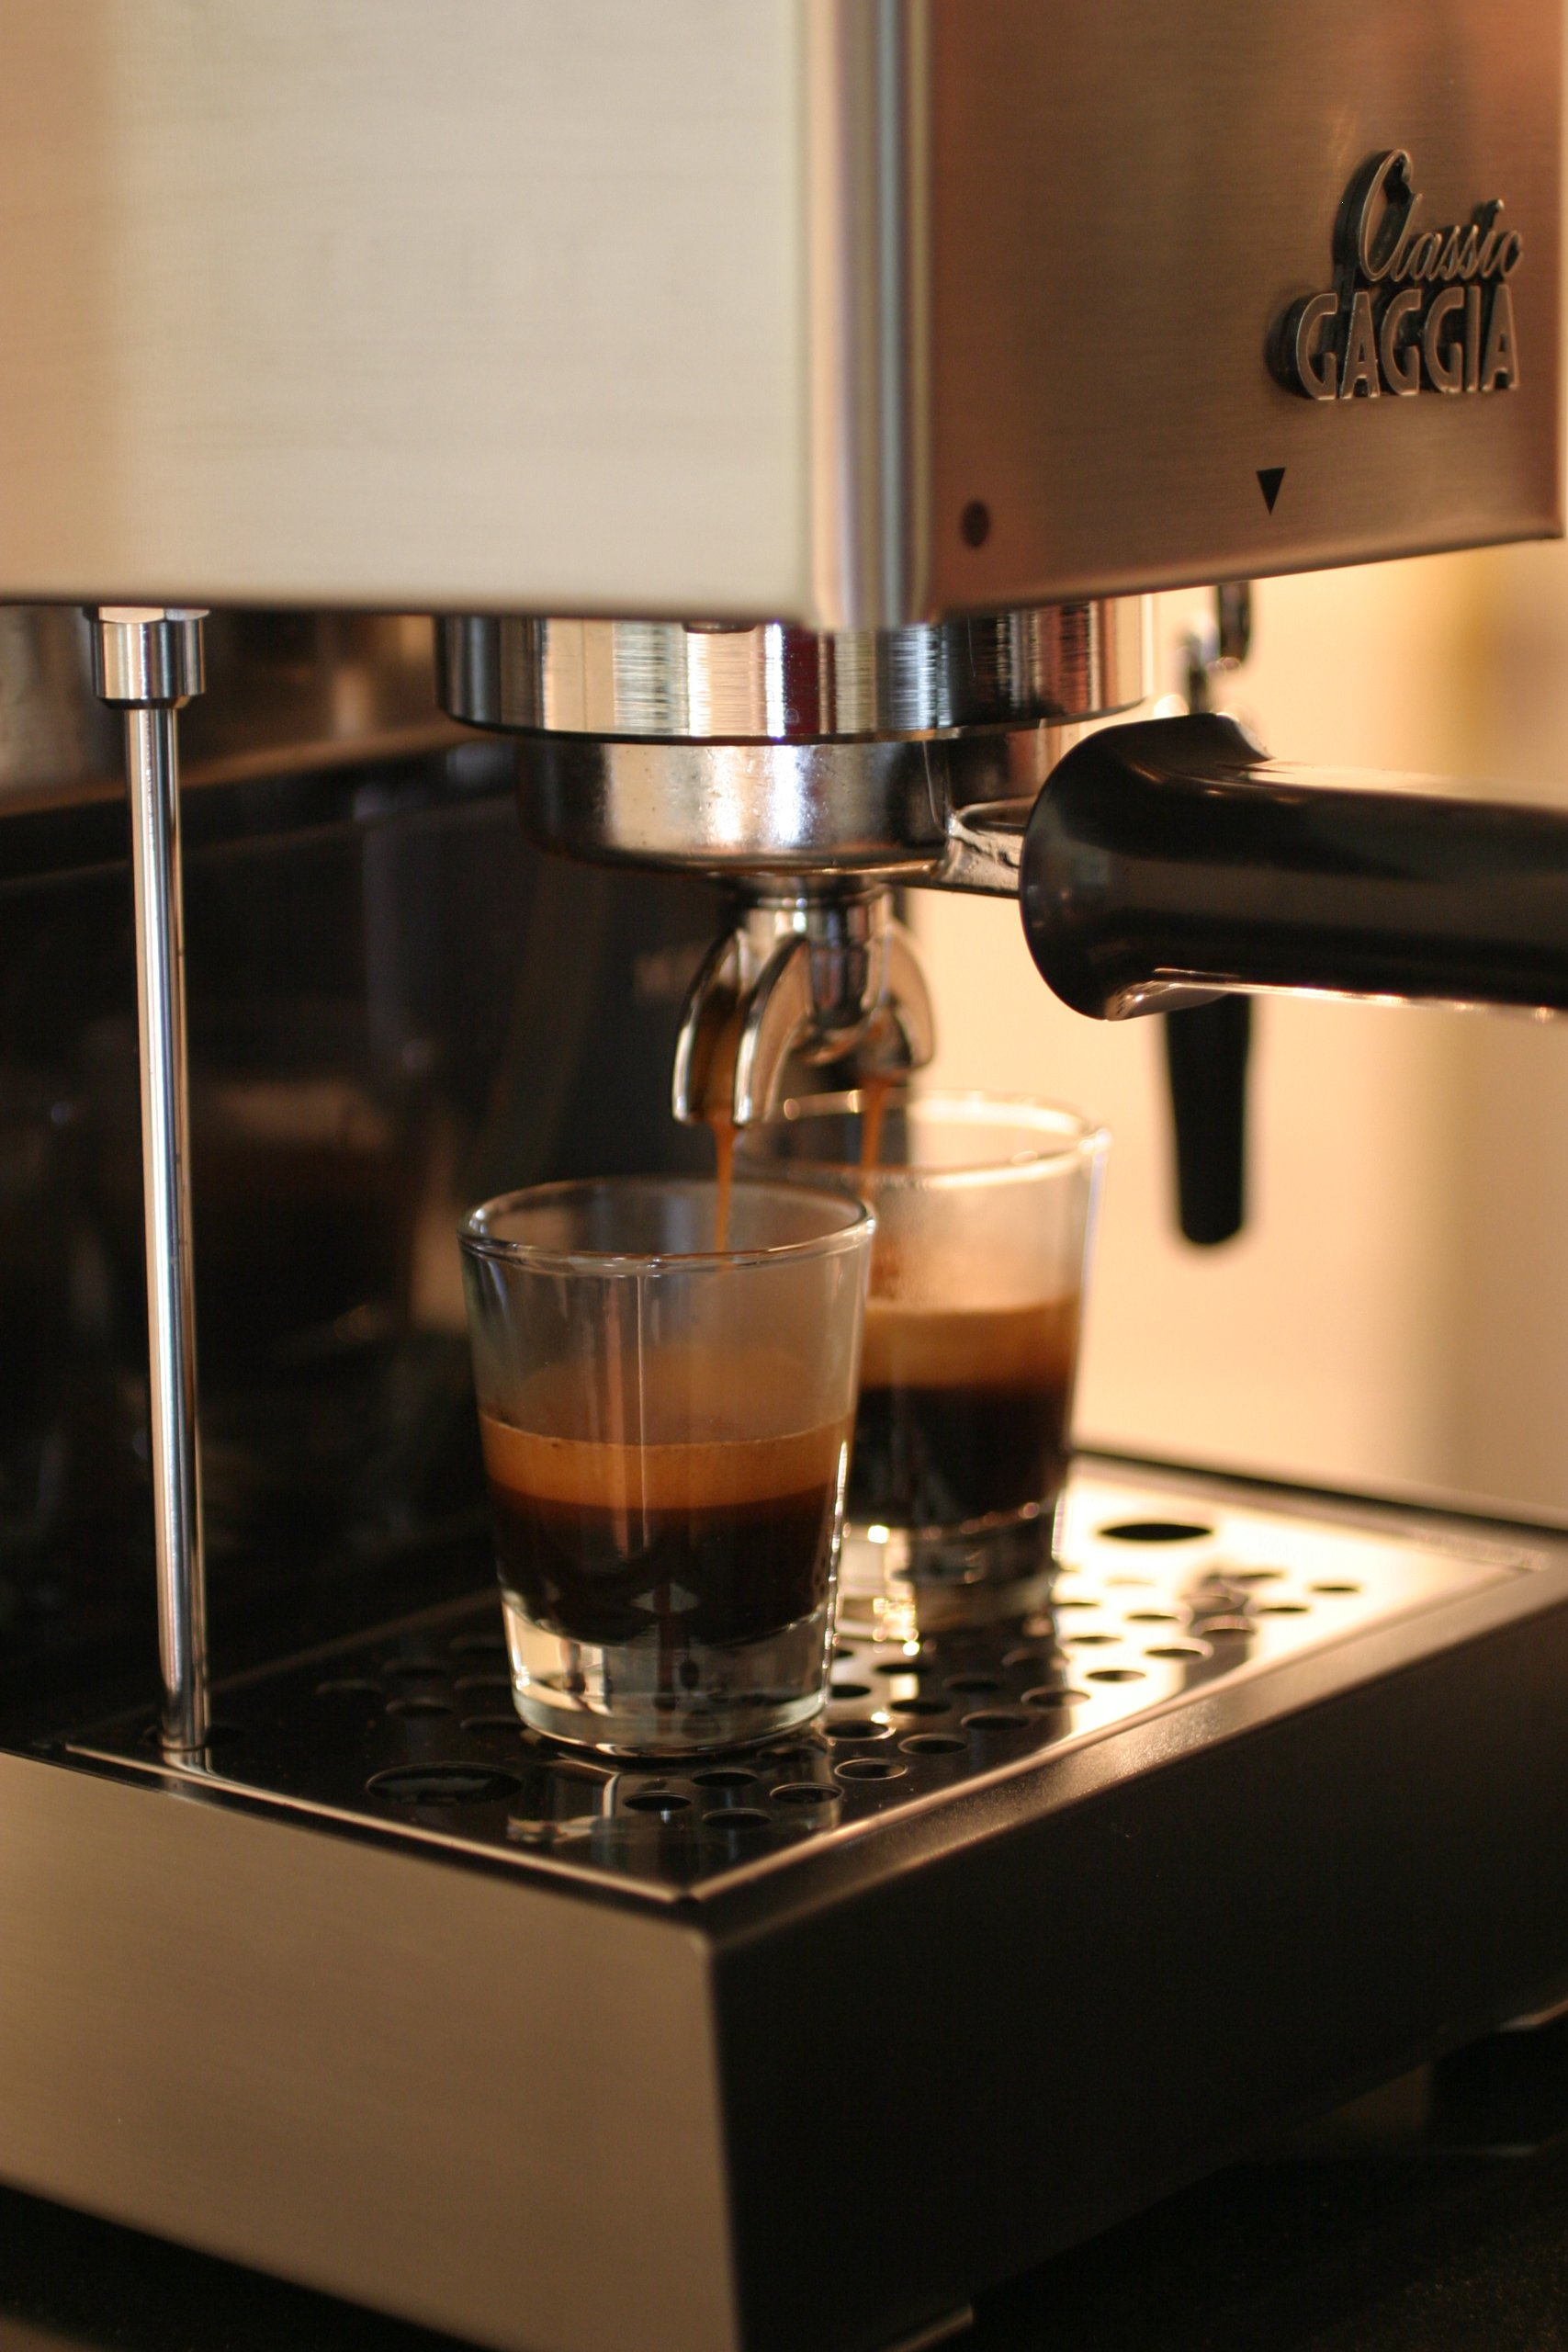 Gaggia Classic Semi-Automatic Espresso Maker. Pannarello Wand for Latte and Cappuccino Frothing. Brews for Both Single and Double Shots. by Gaggia (Image #5)